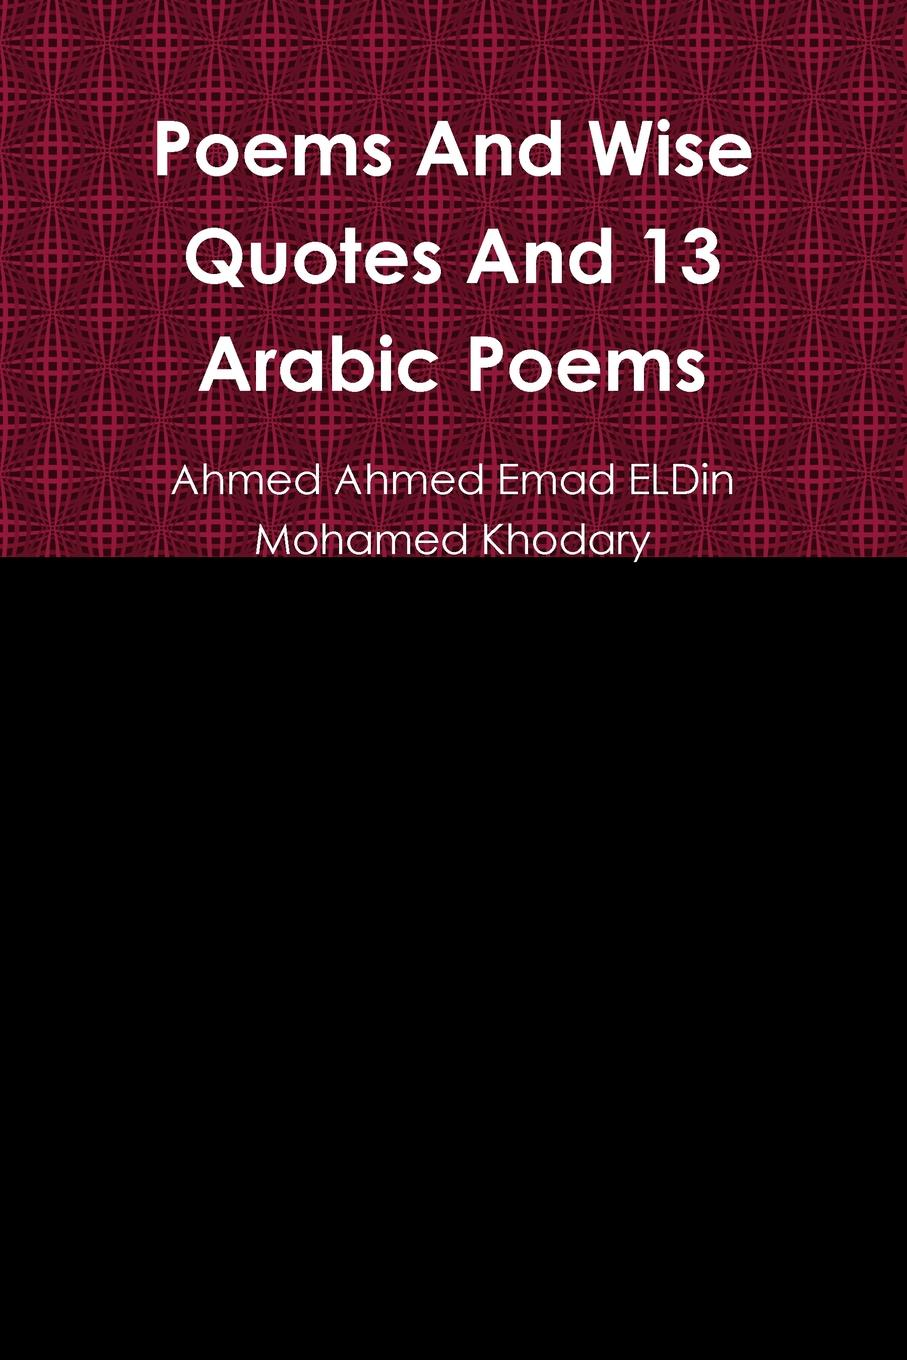 Ahmed Ahmed Emad ELDin Mohamed Khodary Poems And Wise Quotes And 13 Arabic Poems недорго, оригинальная цена